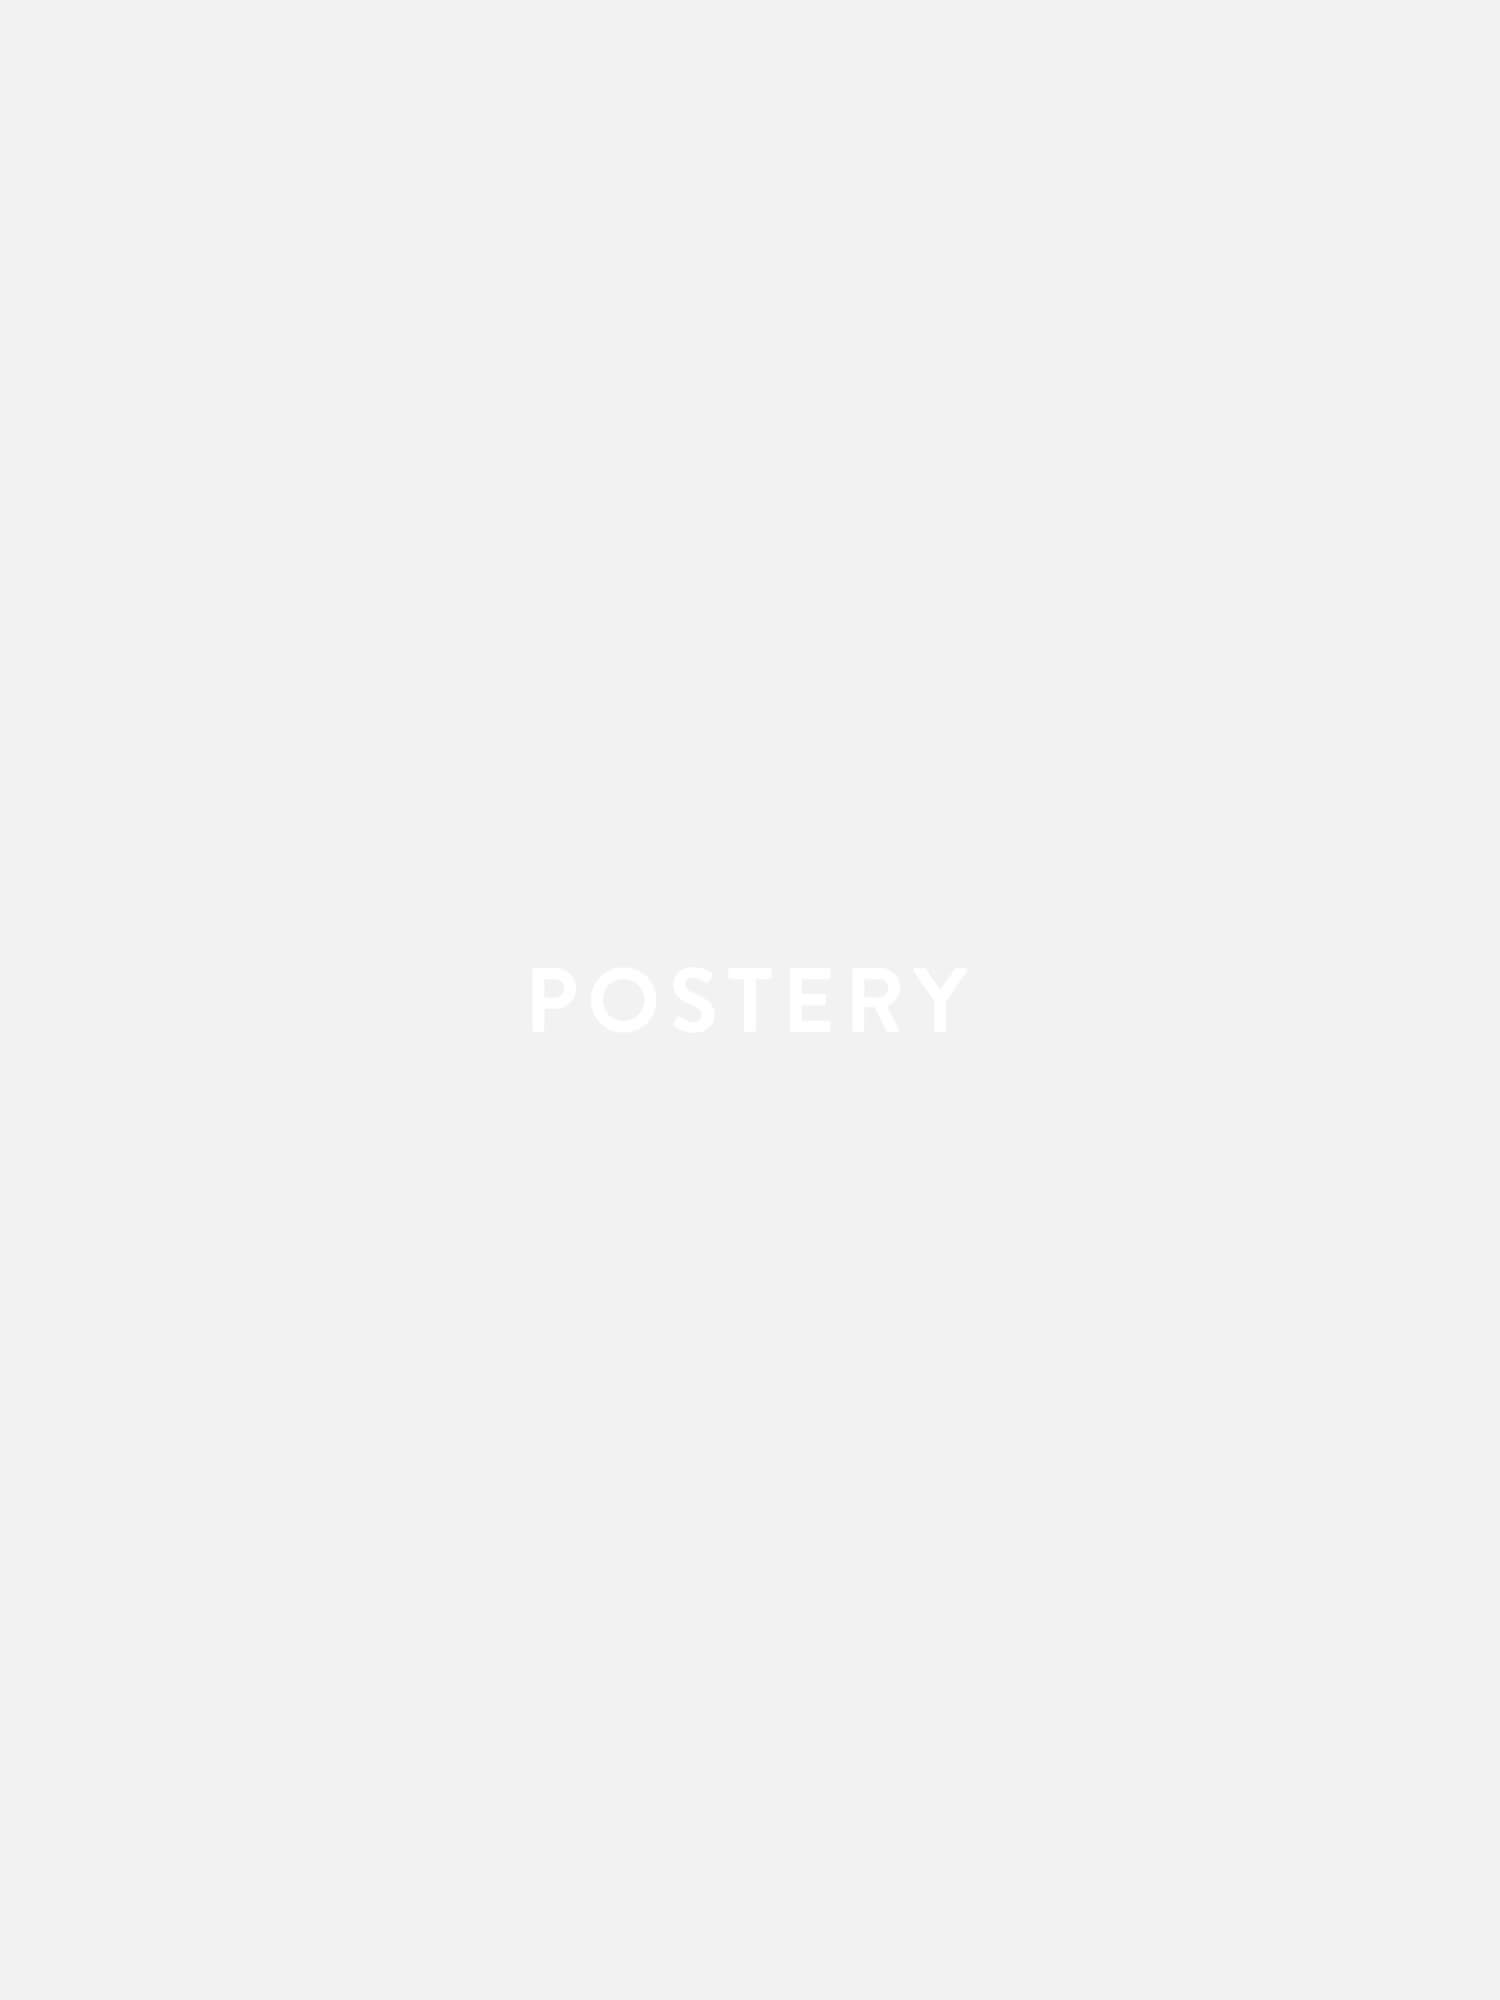 Bunny Picking Stars Poster